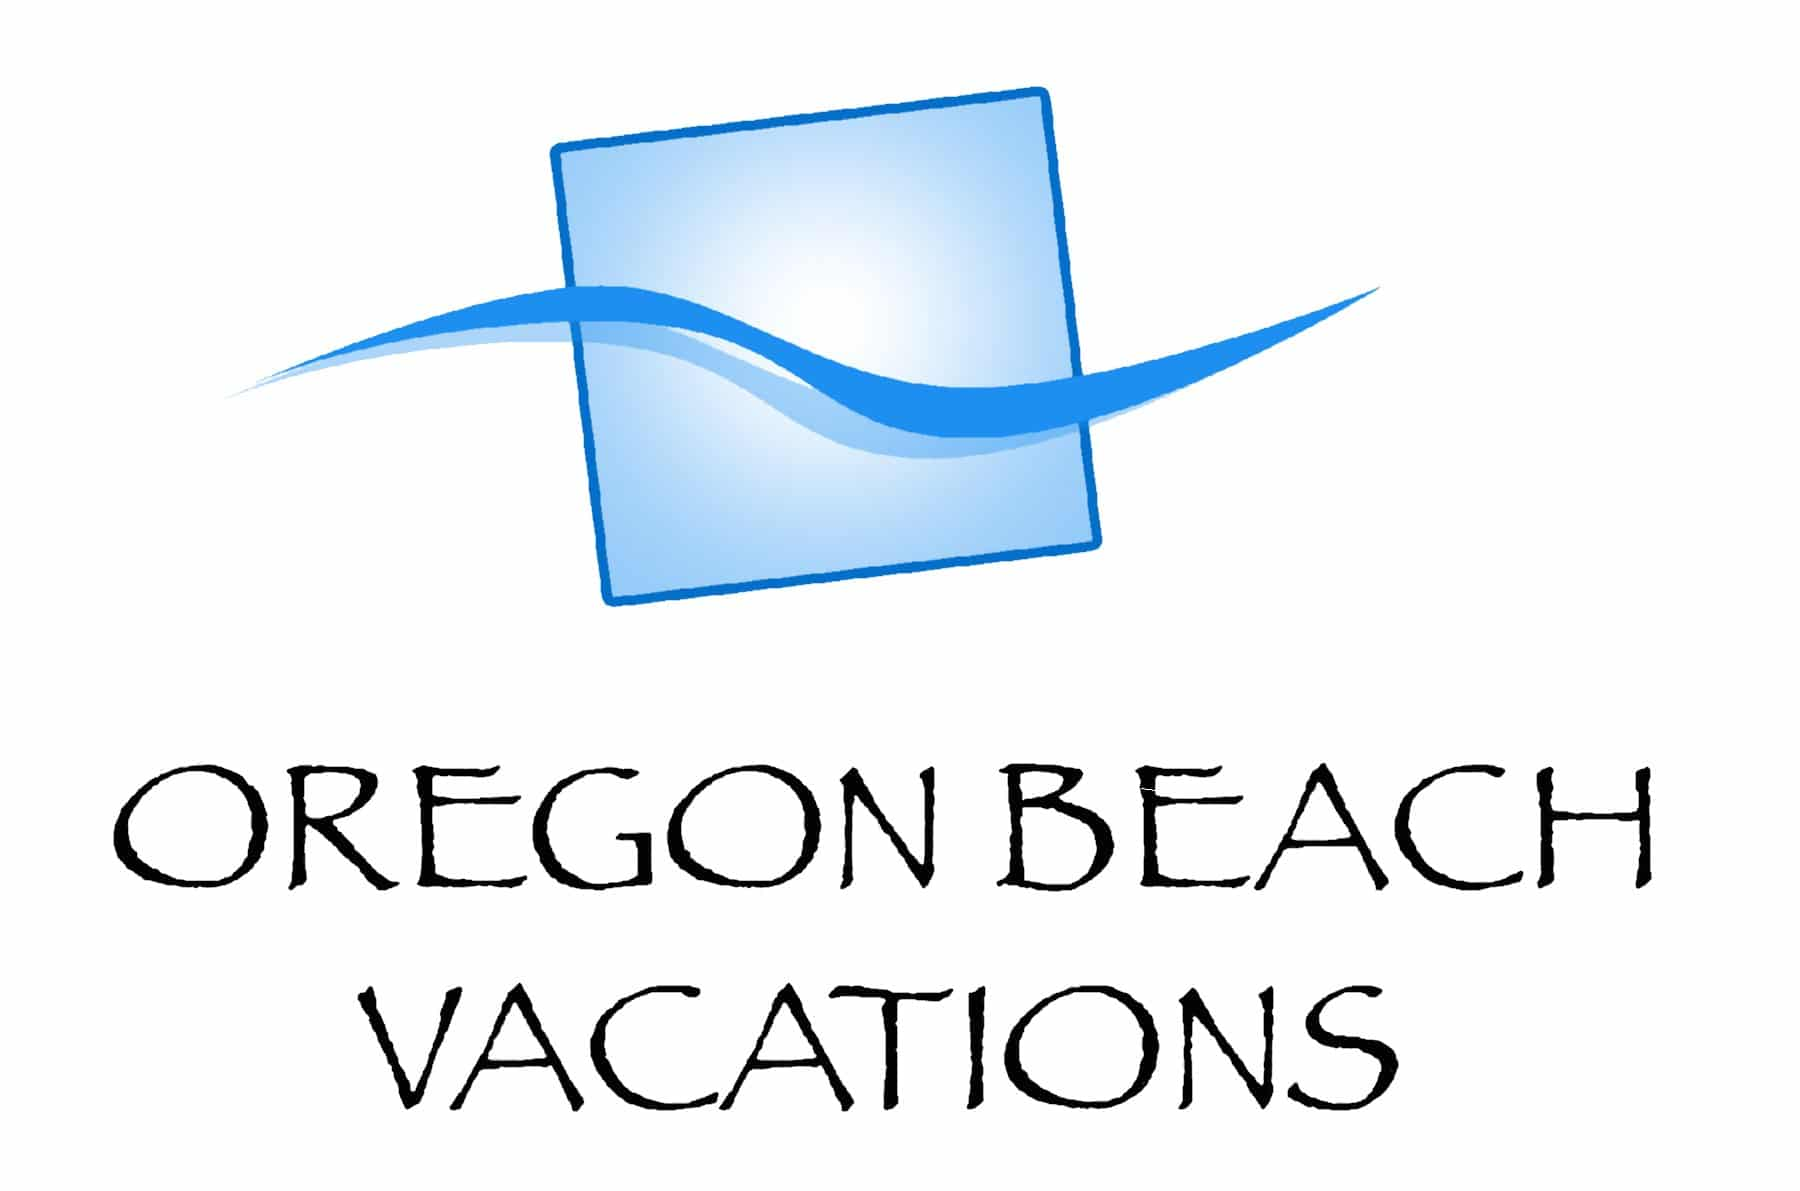 Oregon Beach Vacations